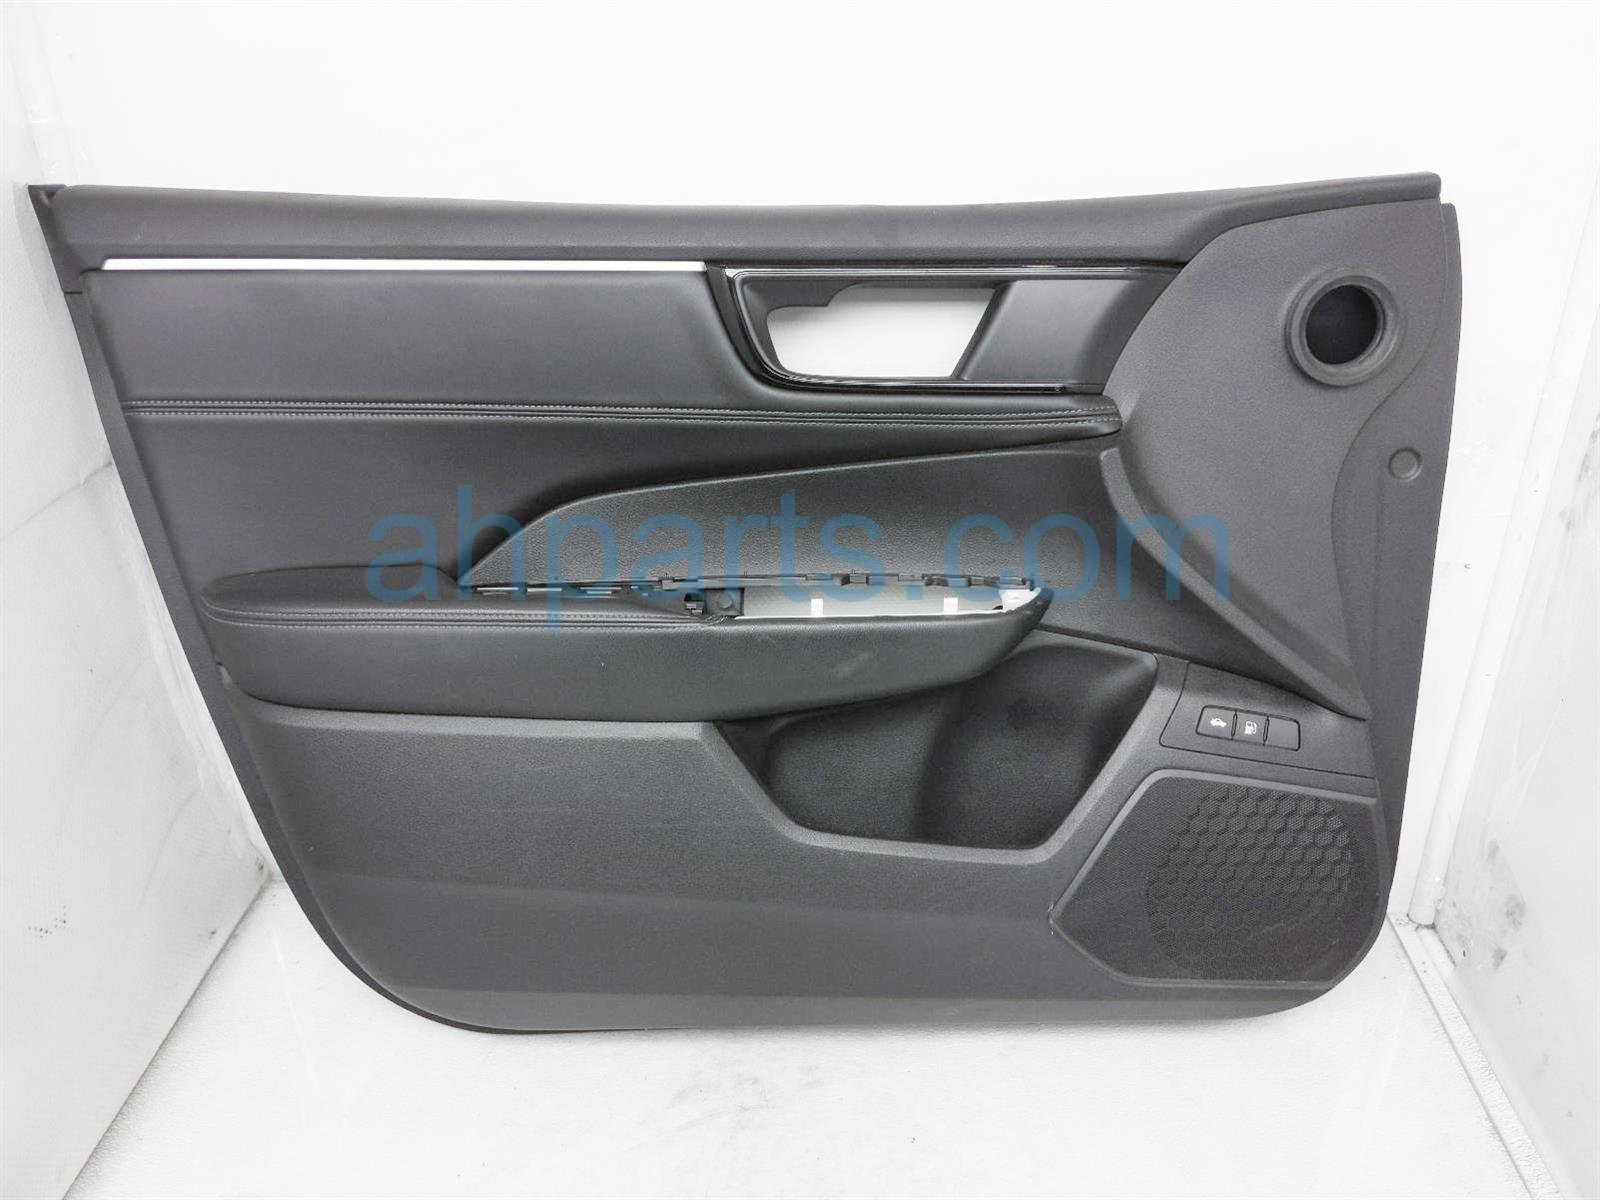 2018 Honda Clarity Trim / Liner Front Driver Interior Door Panel   Black 83551 TRW A21ZB Replacement